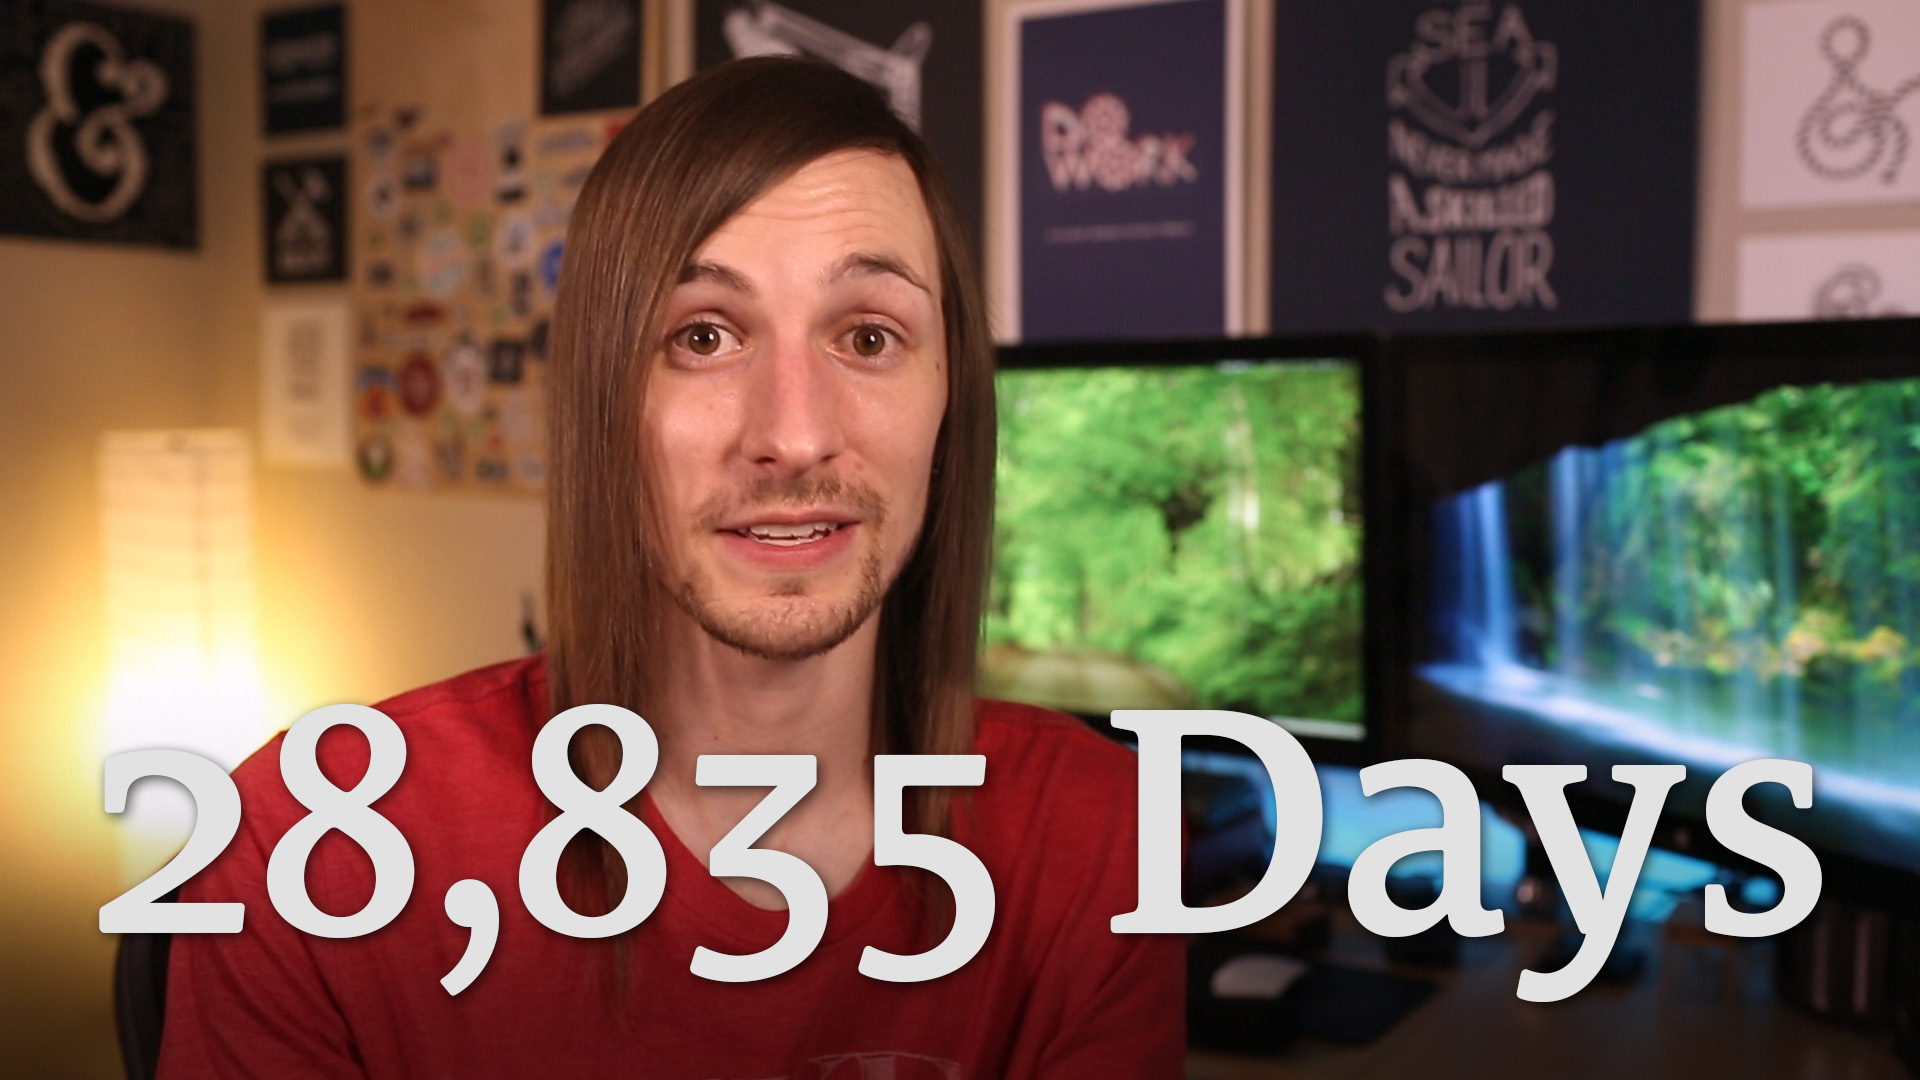 28,835 Days of Dedication